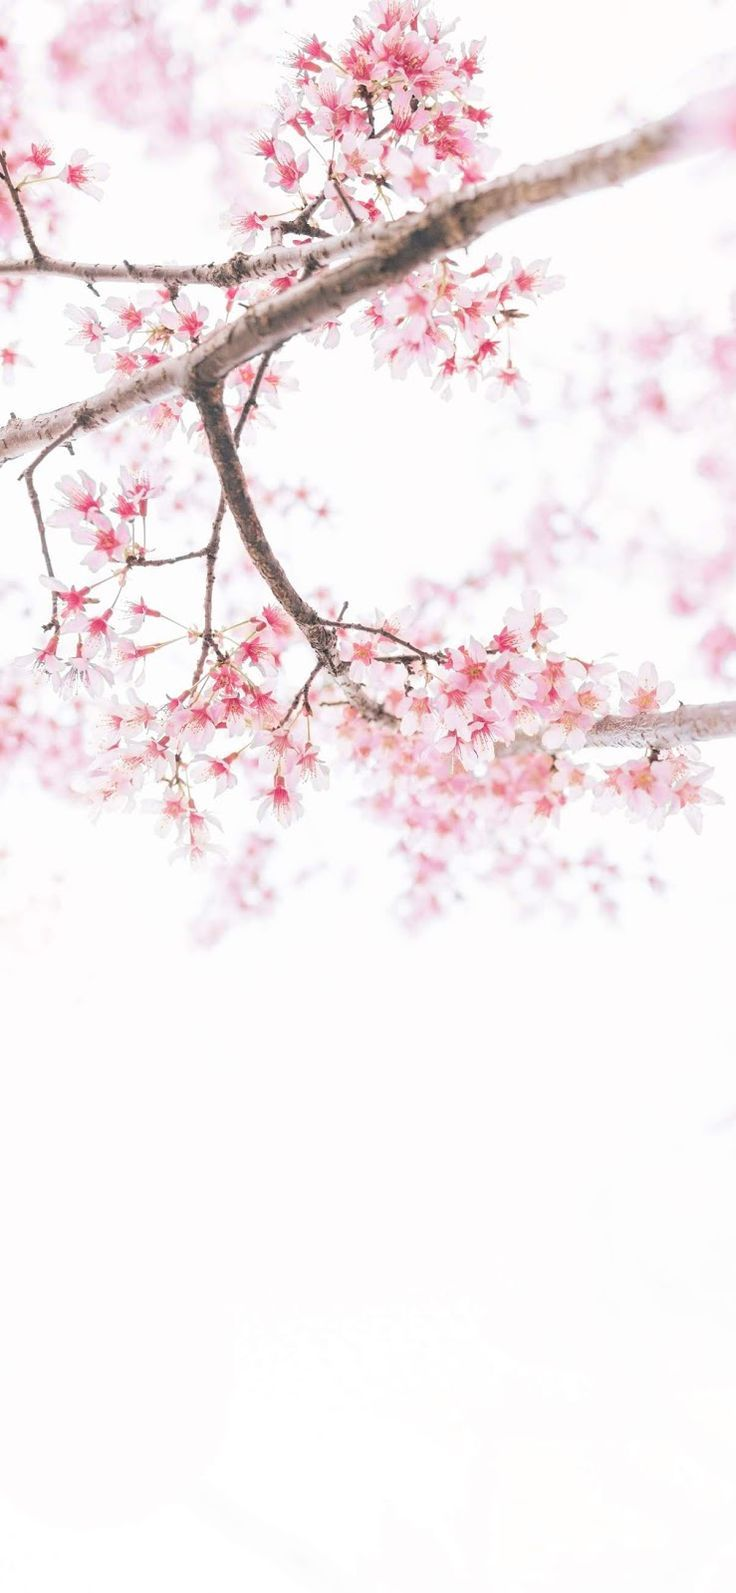 Iphone Wallpaper Cherry Blossom Wallpaper Iphone Xs Max Wallpaper Kirschblute Wallpaper Schone Tapeten Hintergrundbilder Iphone